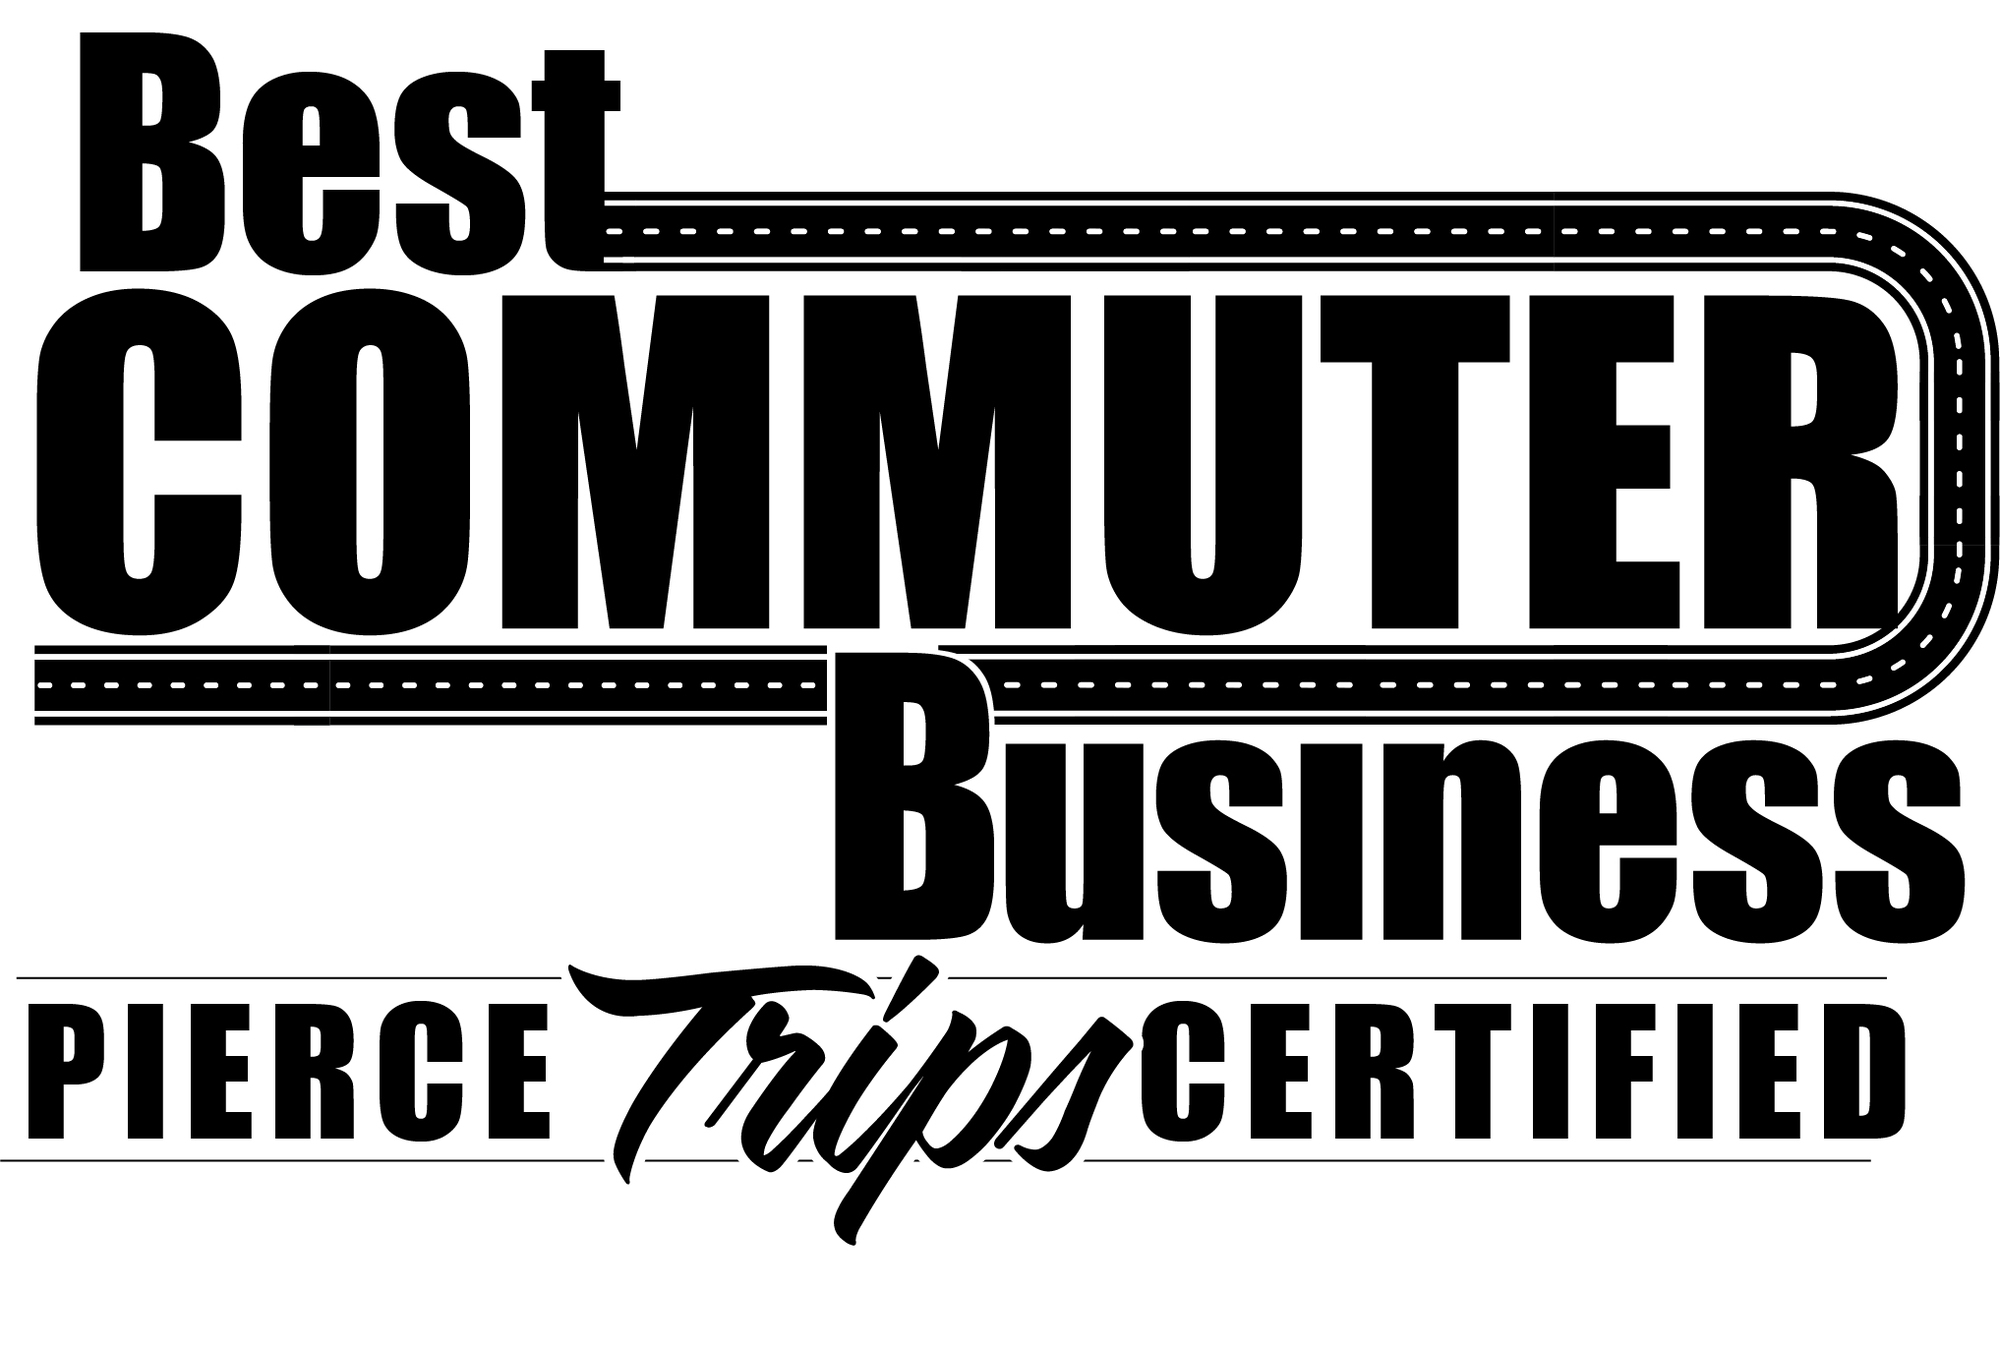 Best Commuter Business Logo